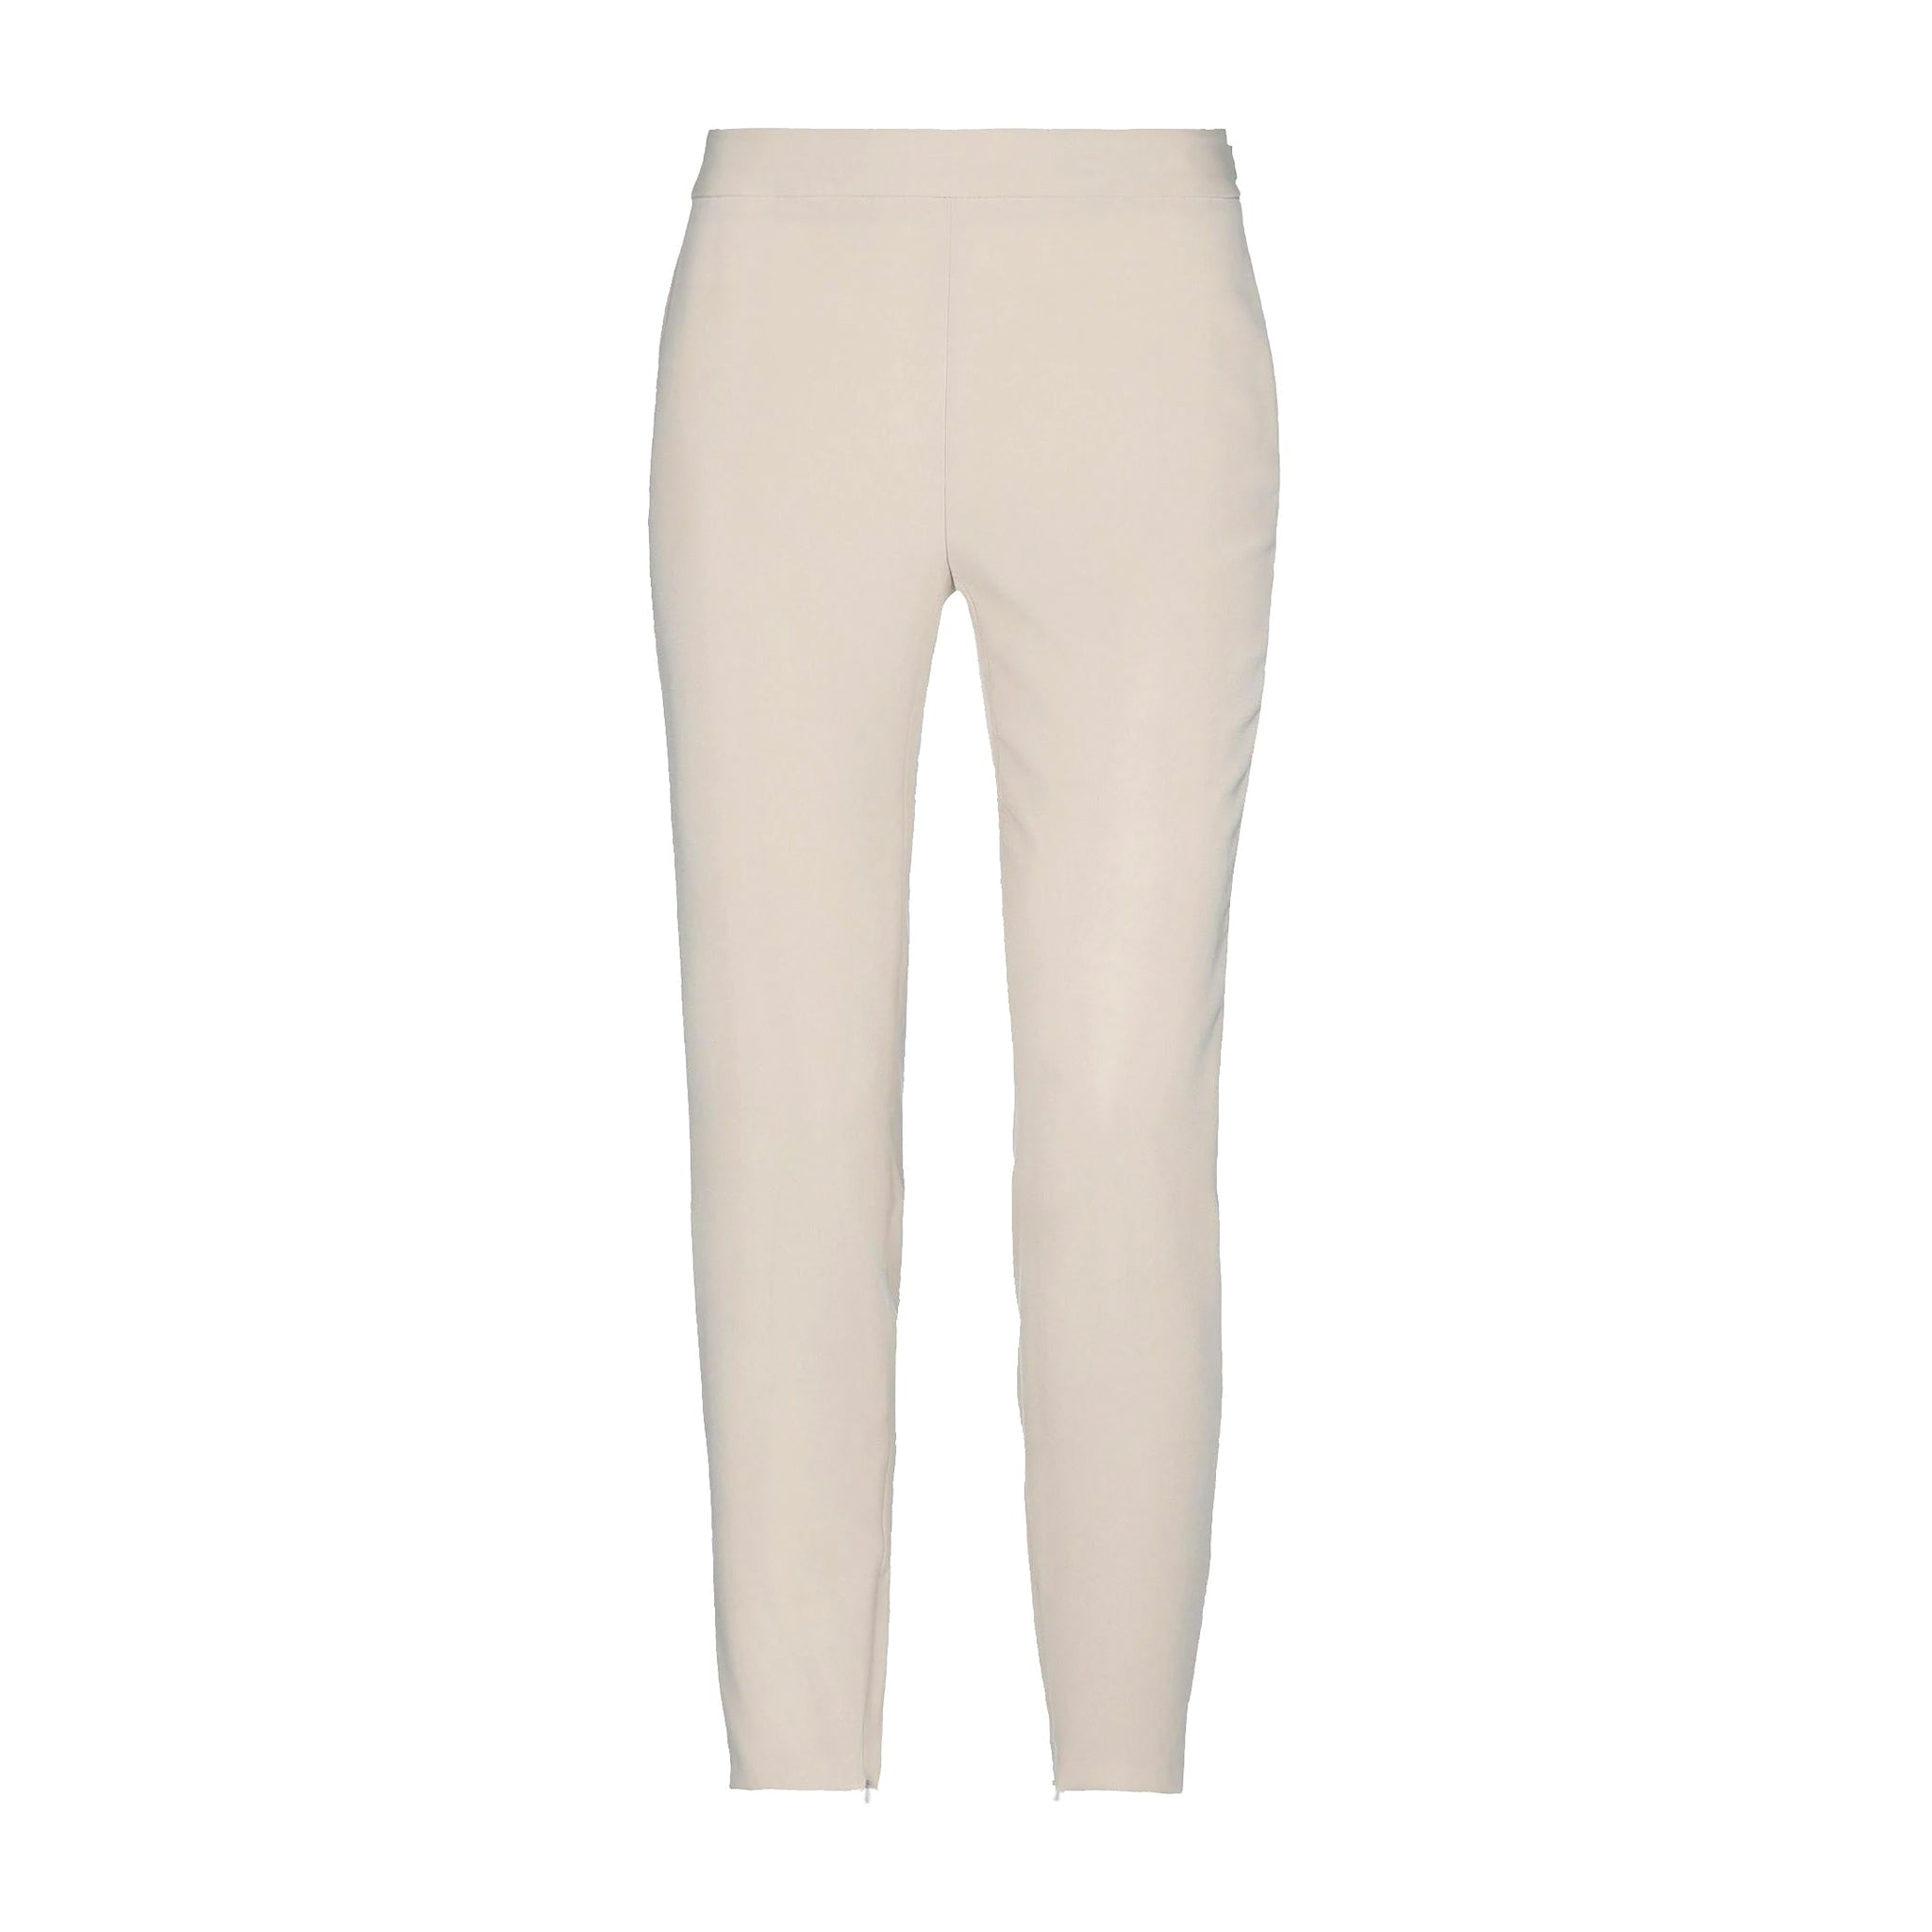 Boutique Moschino High Waist Trousers